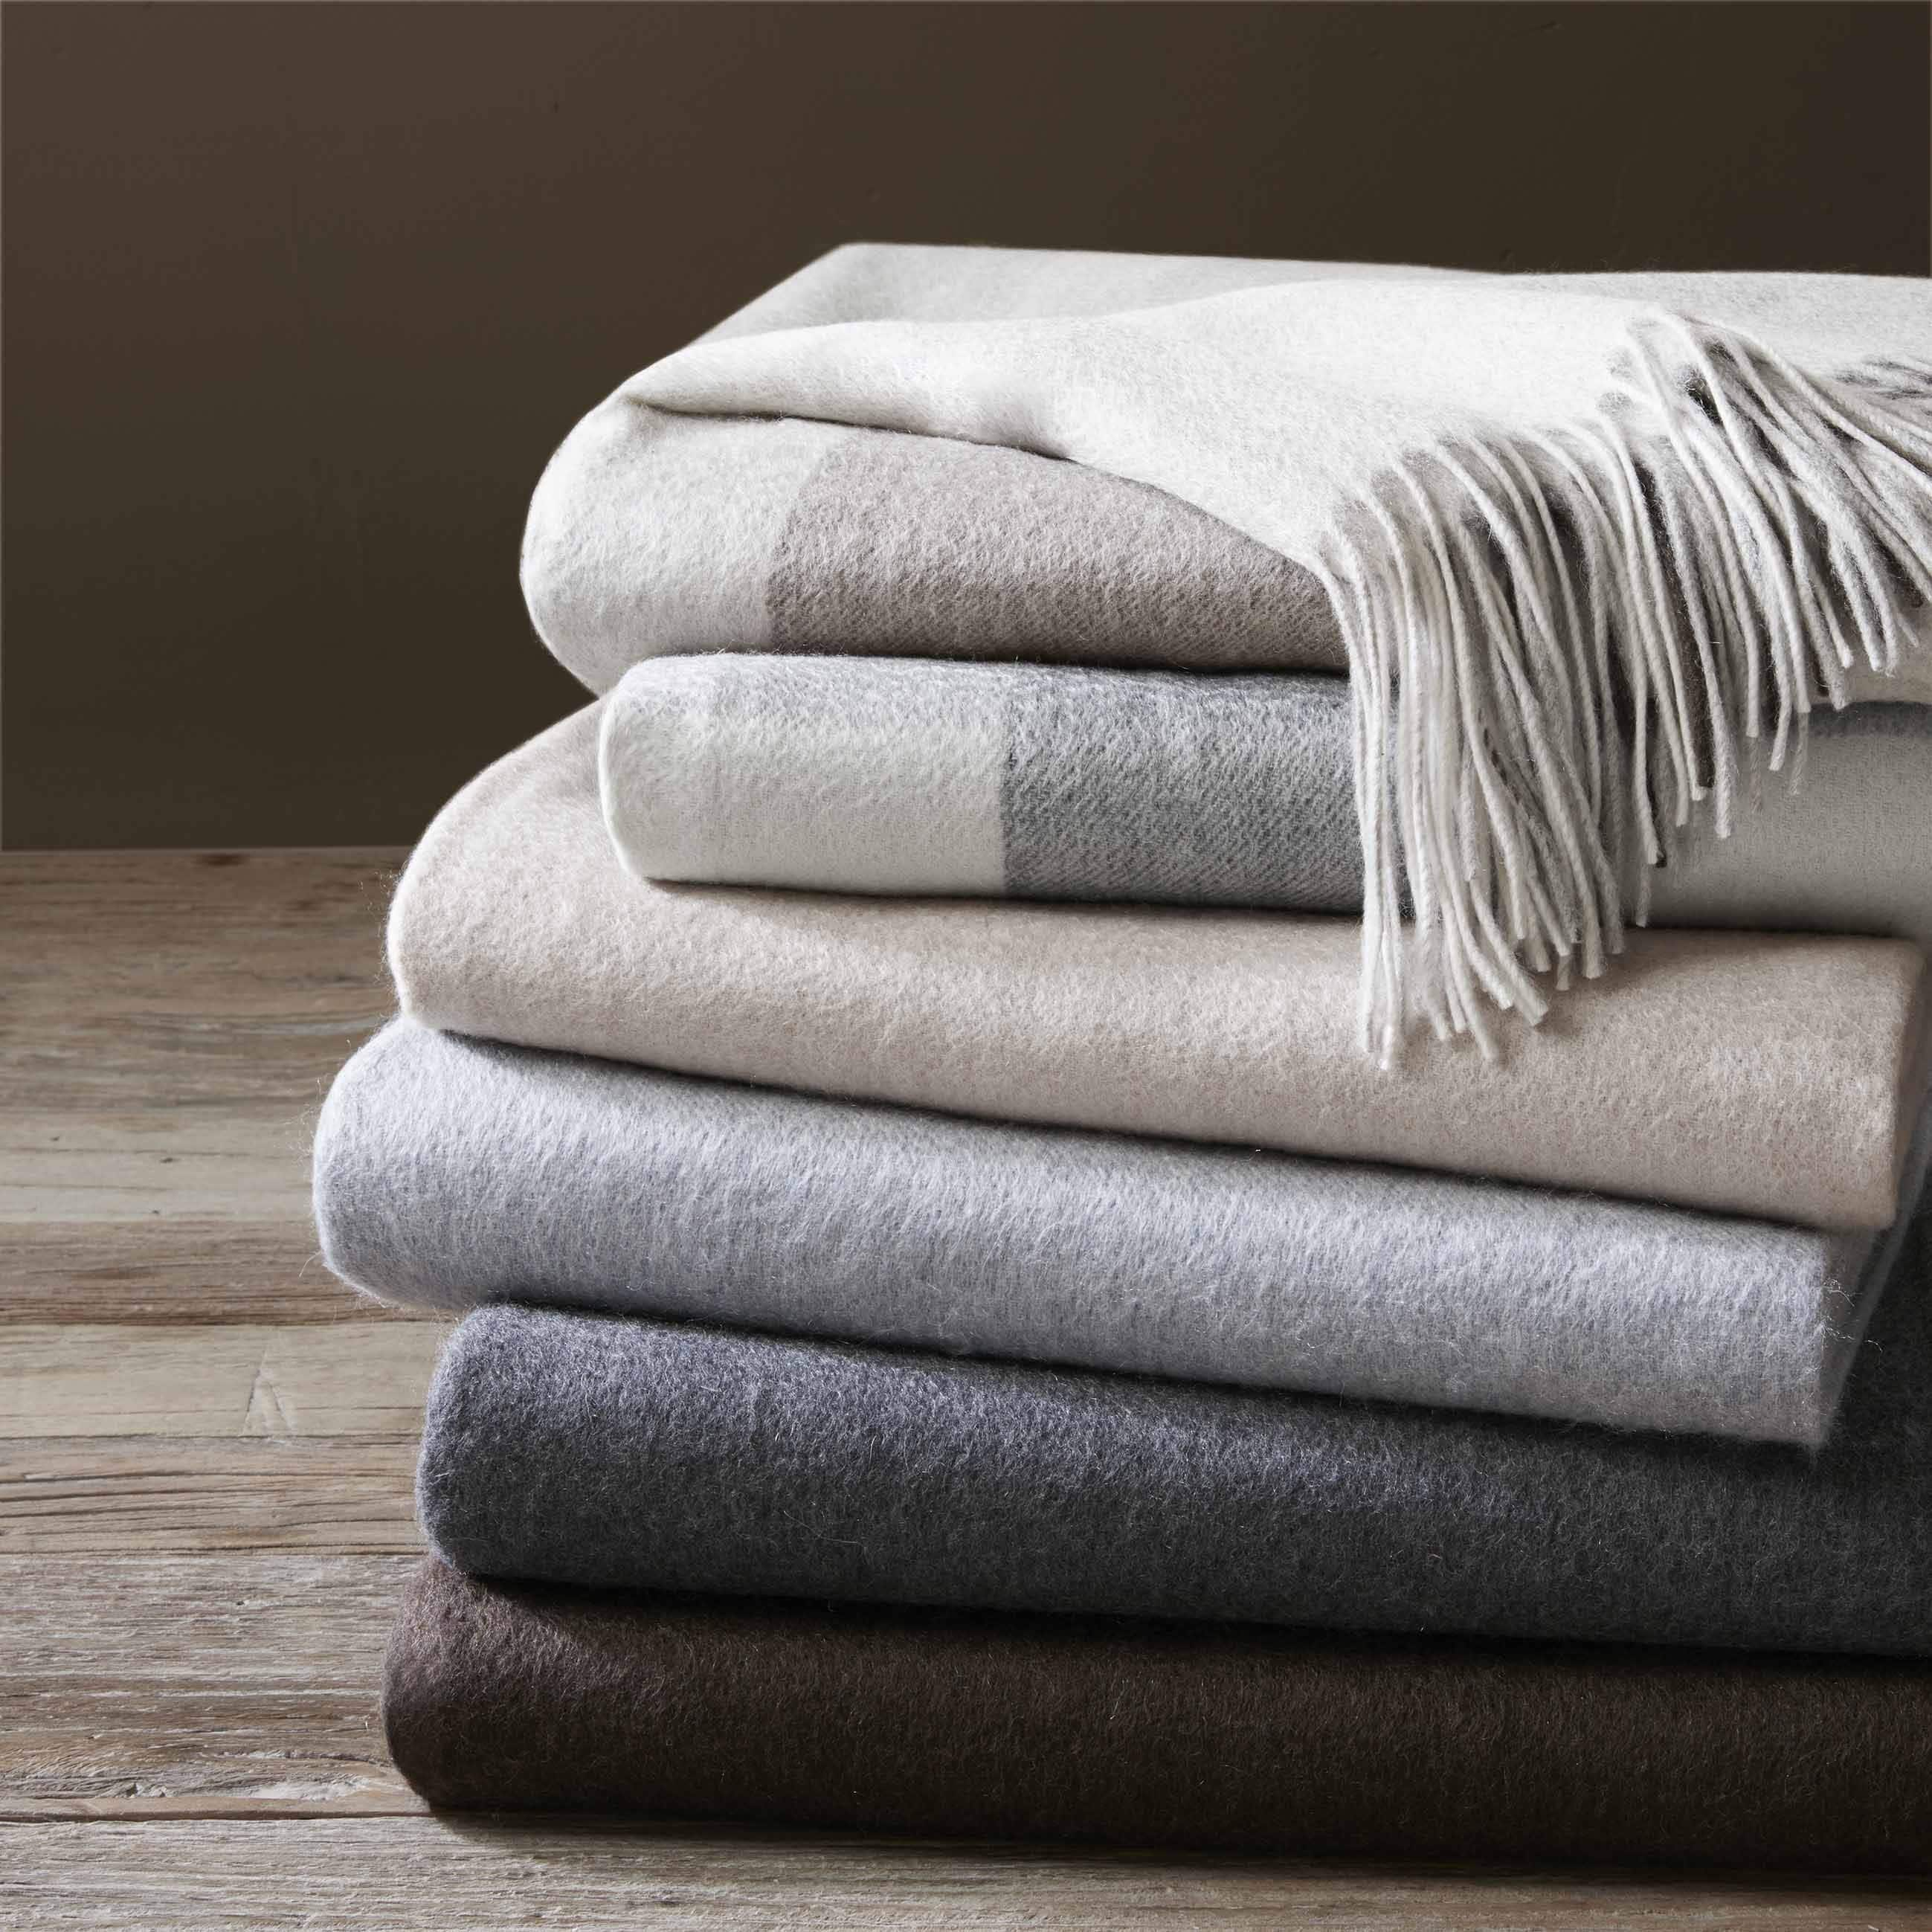 Shop Blankets & Throws link image